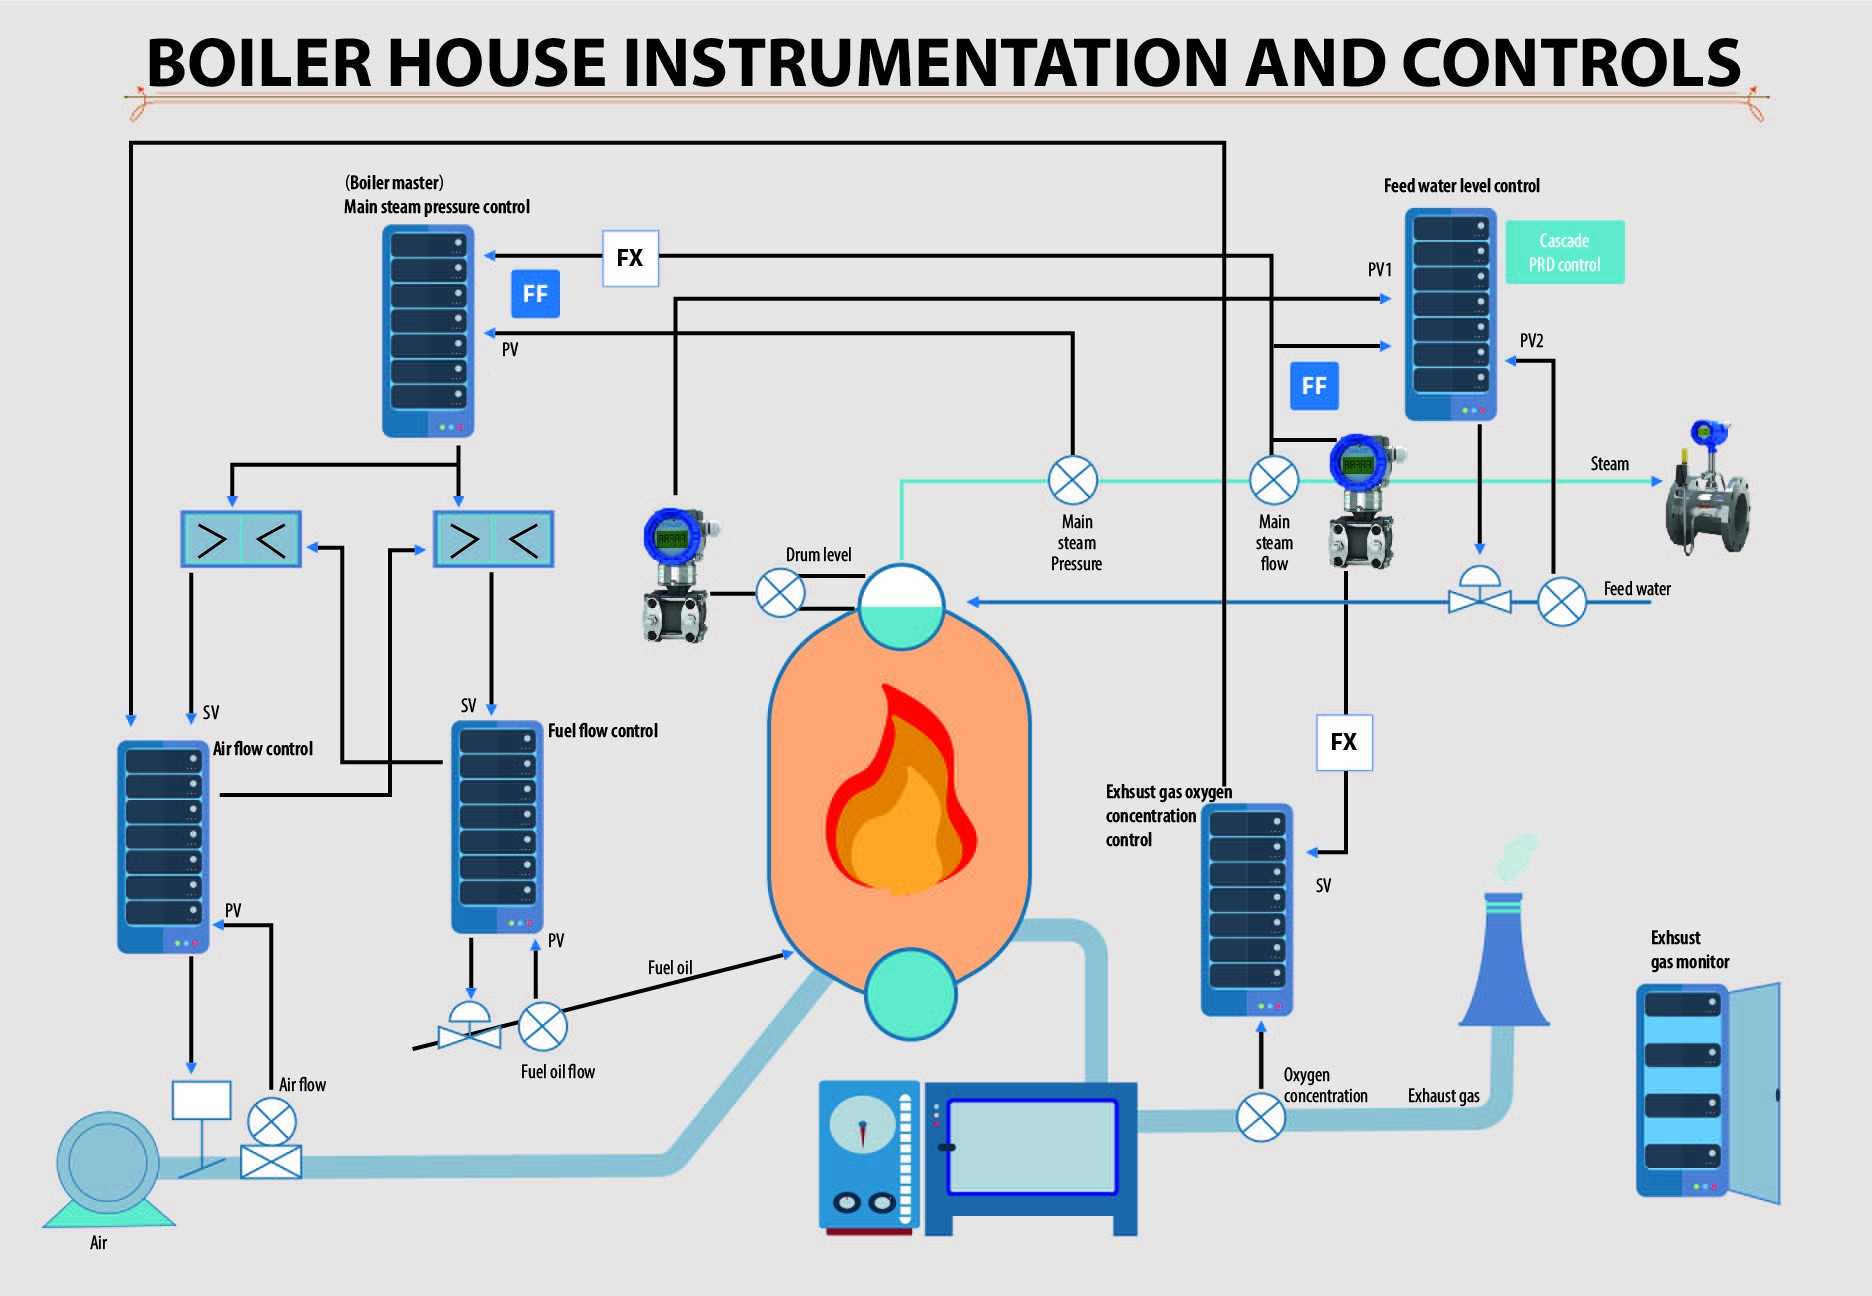 Boiler House Instrumentation And Controls